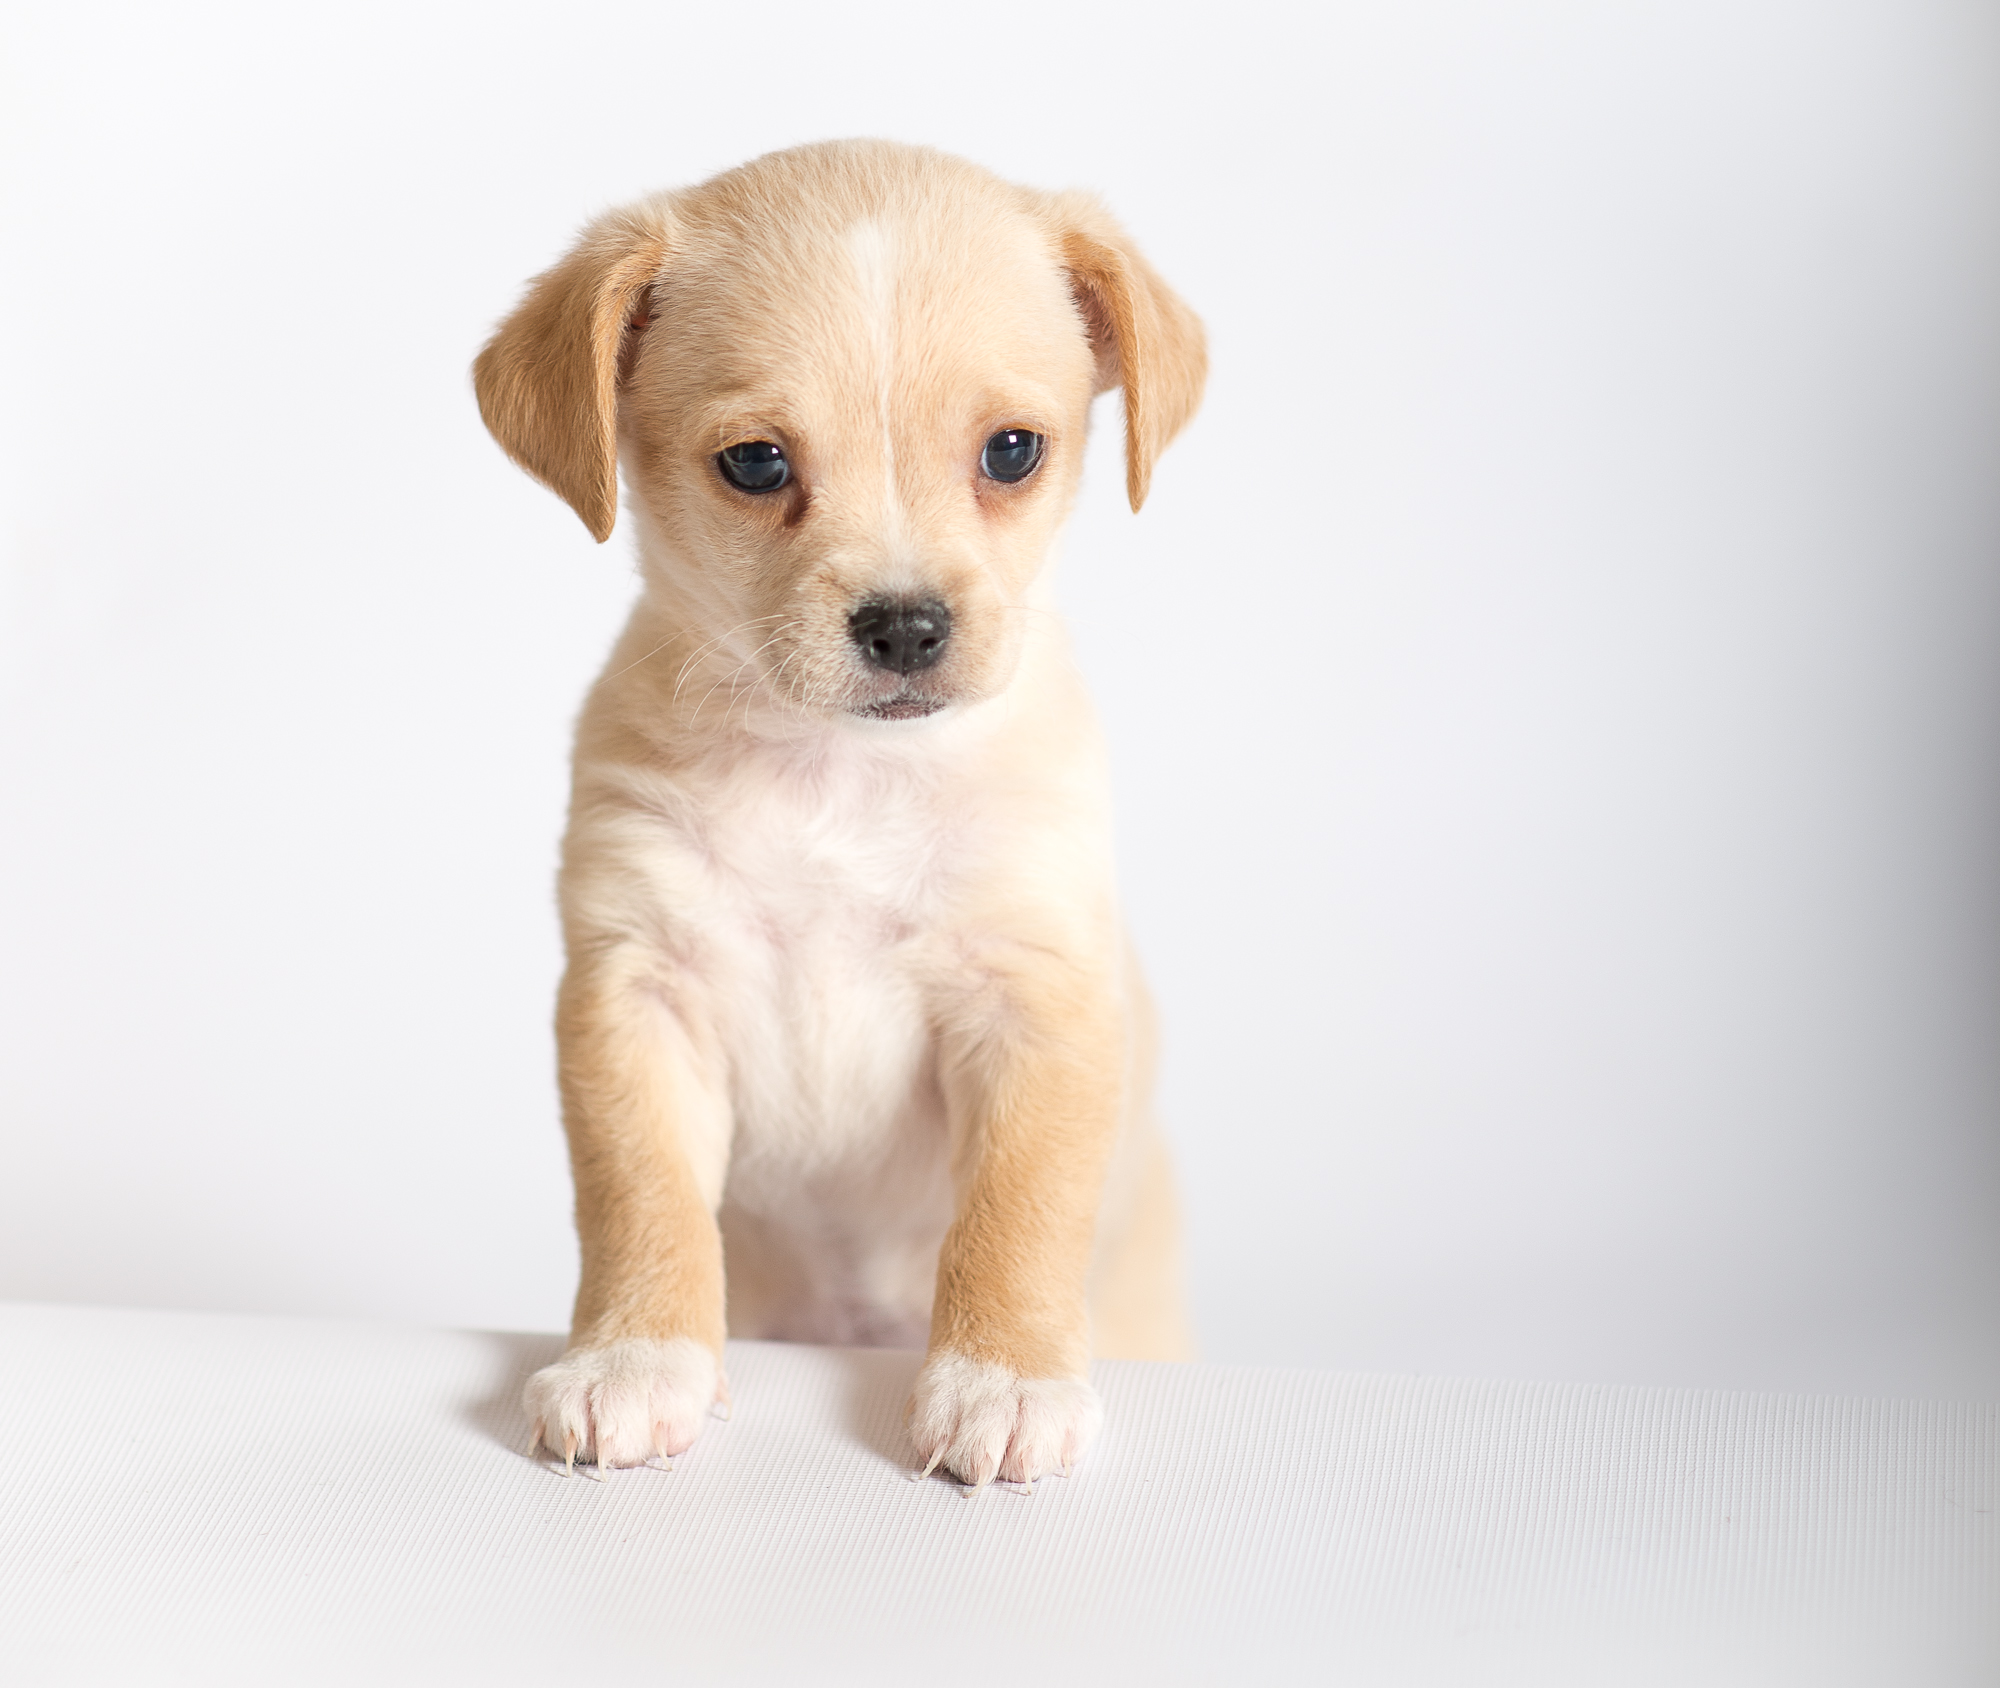 An untrained puppy. Posing for the camera